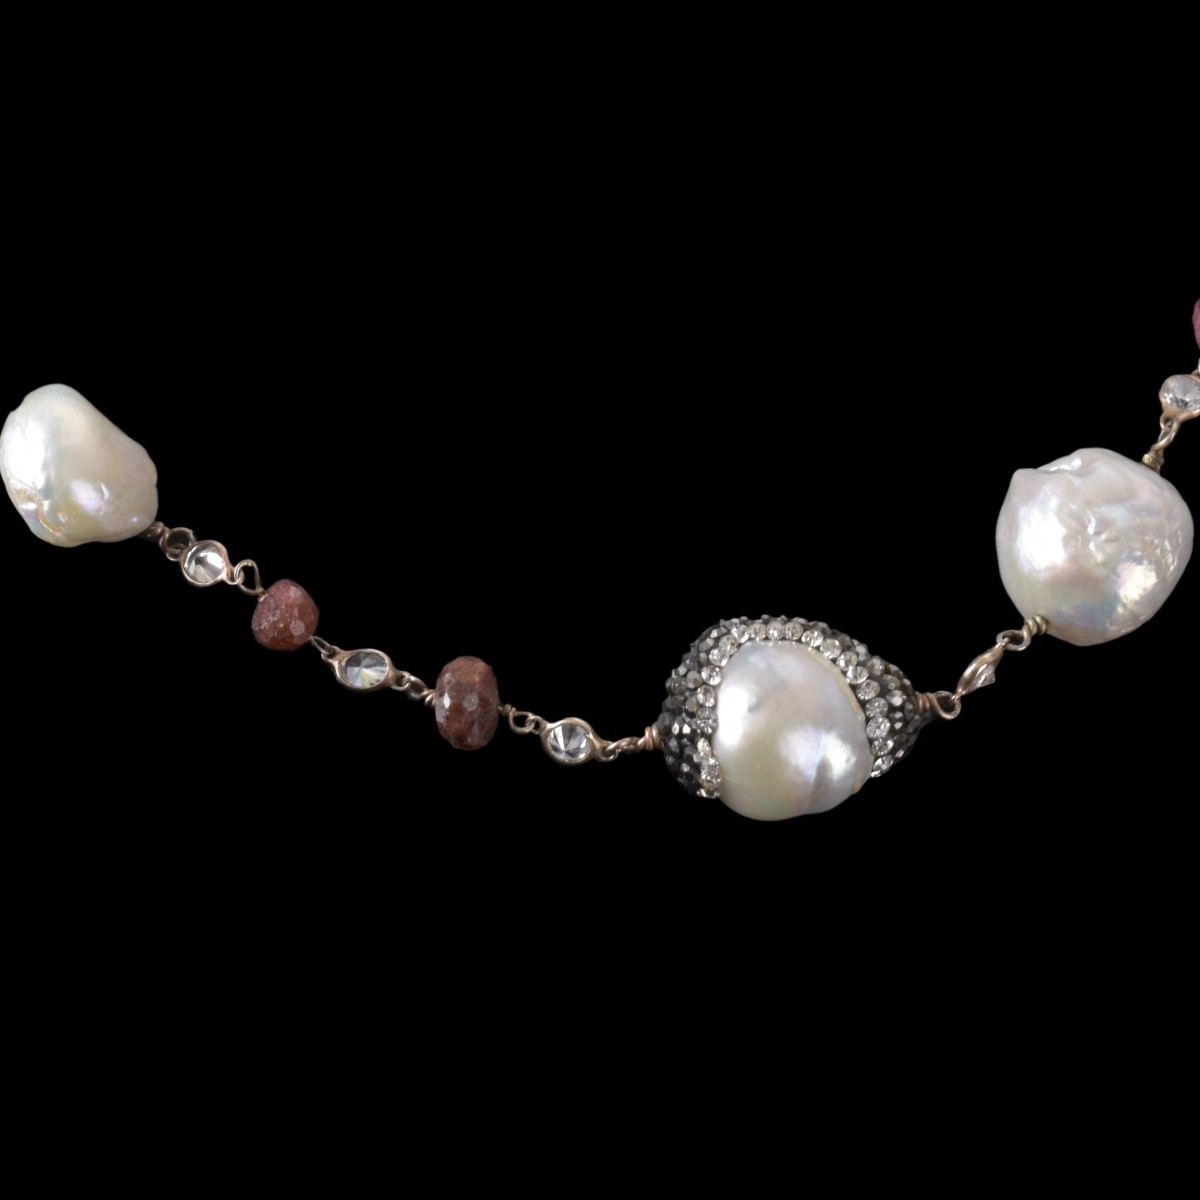 Lot 135 - Vintage Indian Baroque Pearl Necklace